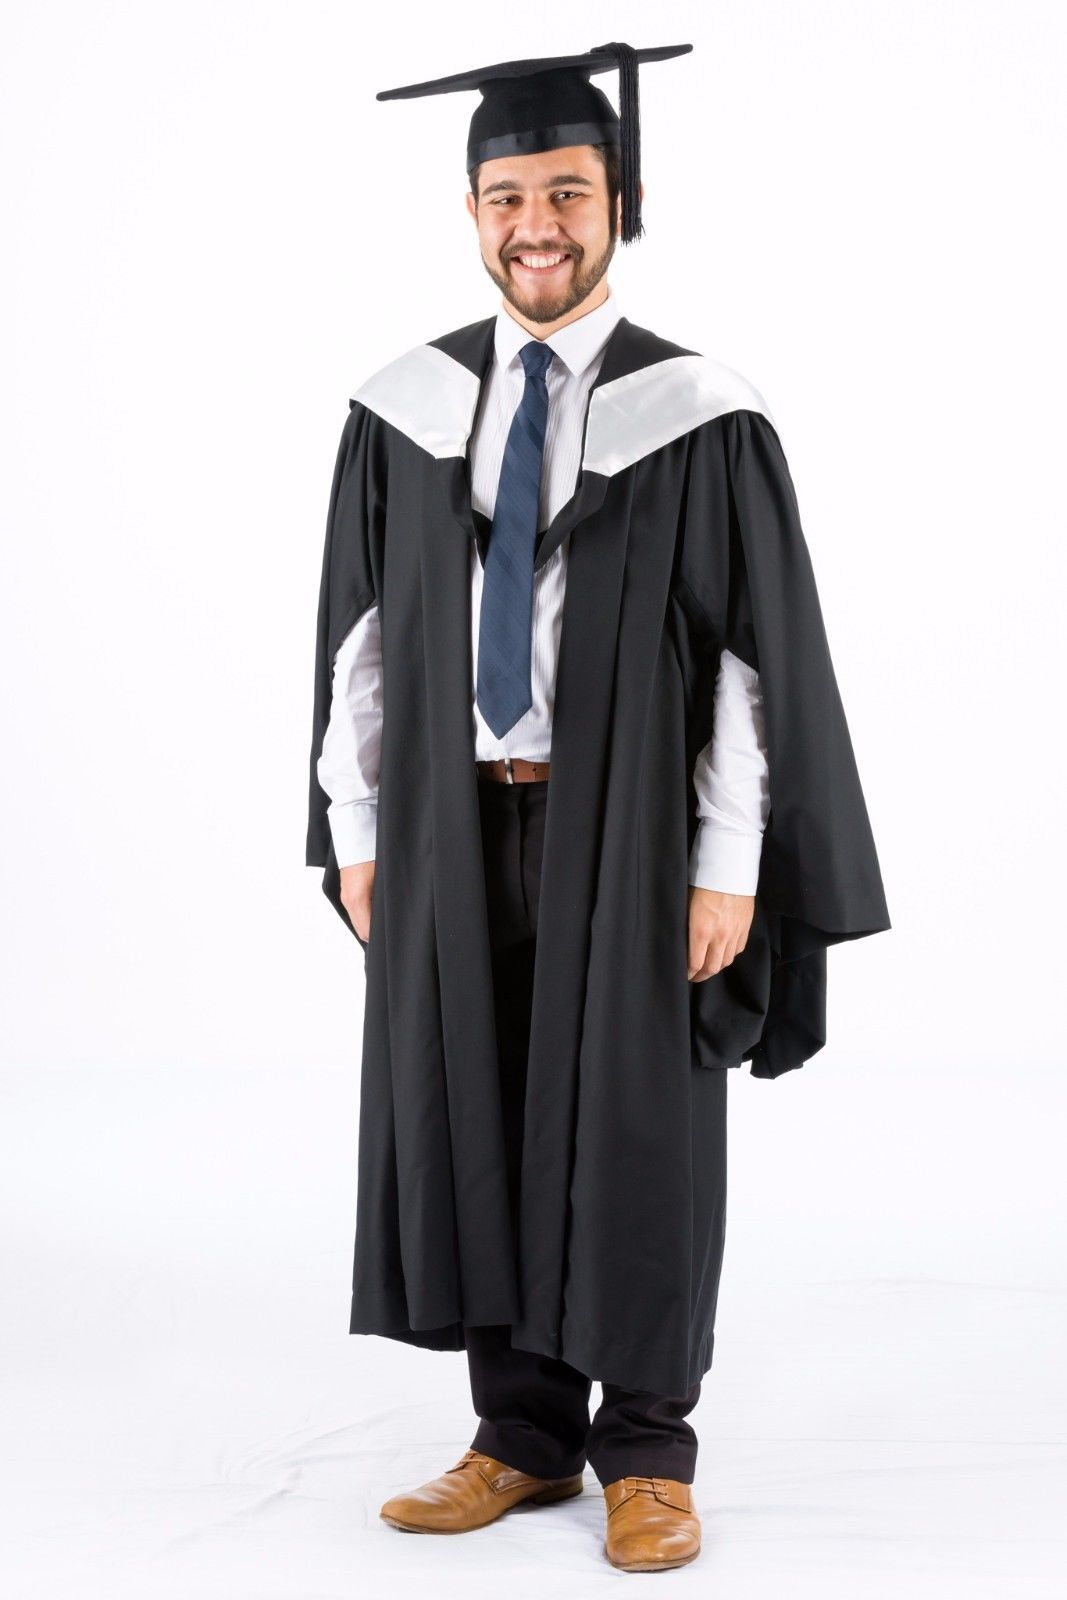 Bachelor Hood University of Queensland Pearl White Graduation ...